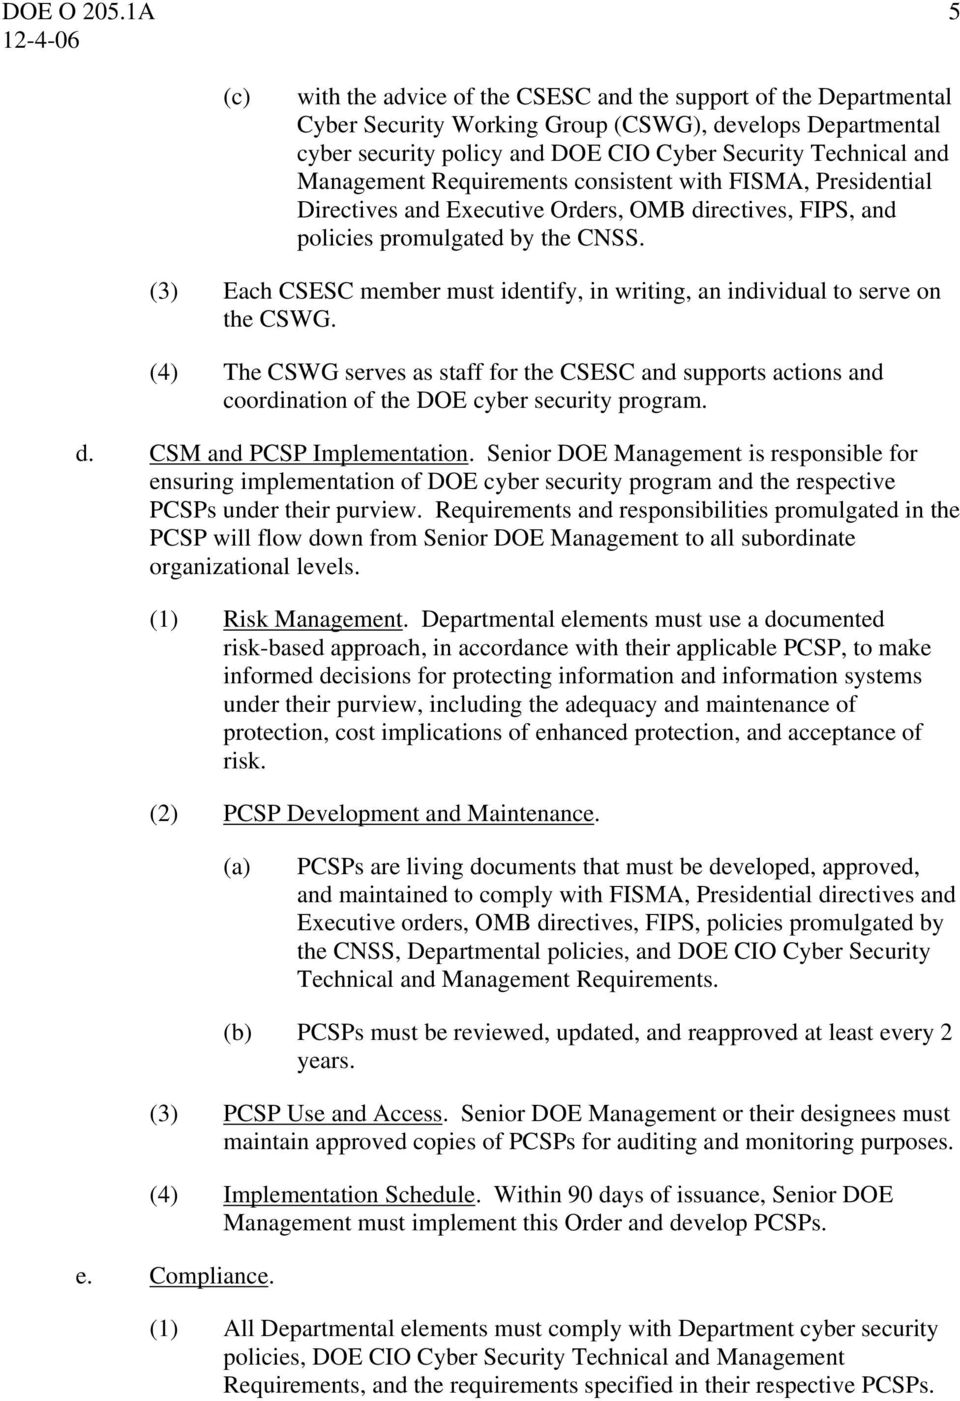 Management Requirements consistent with FISMA, Presidential Directives and Executive Orders, OMB directives, FIPS, and policies promulgated by the CNSS.